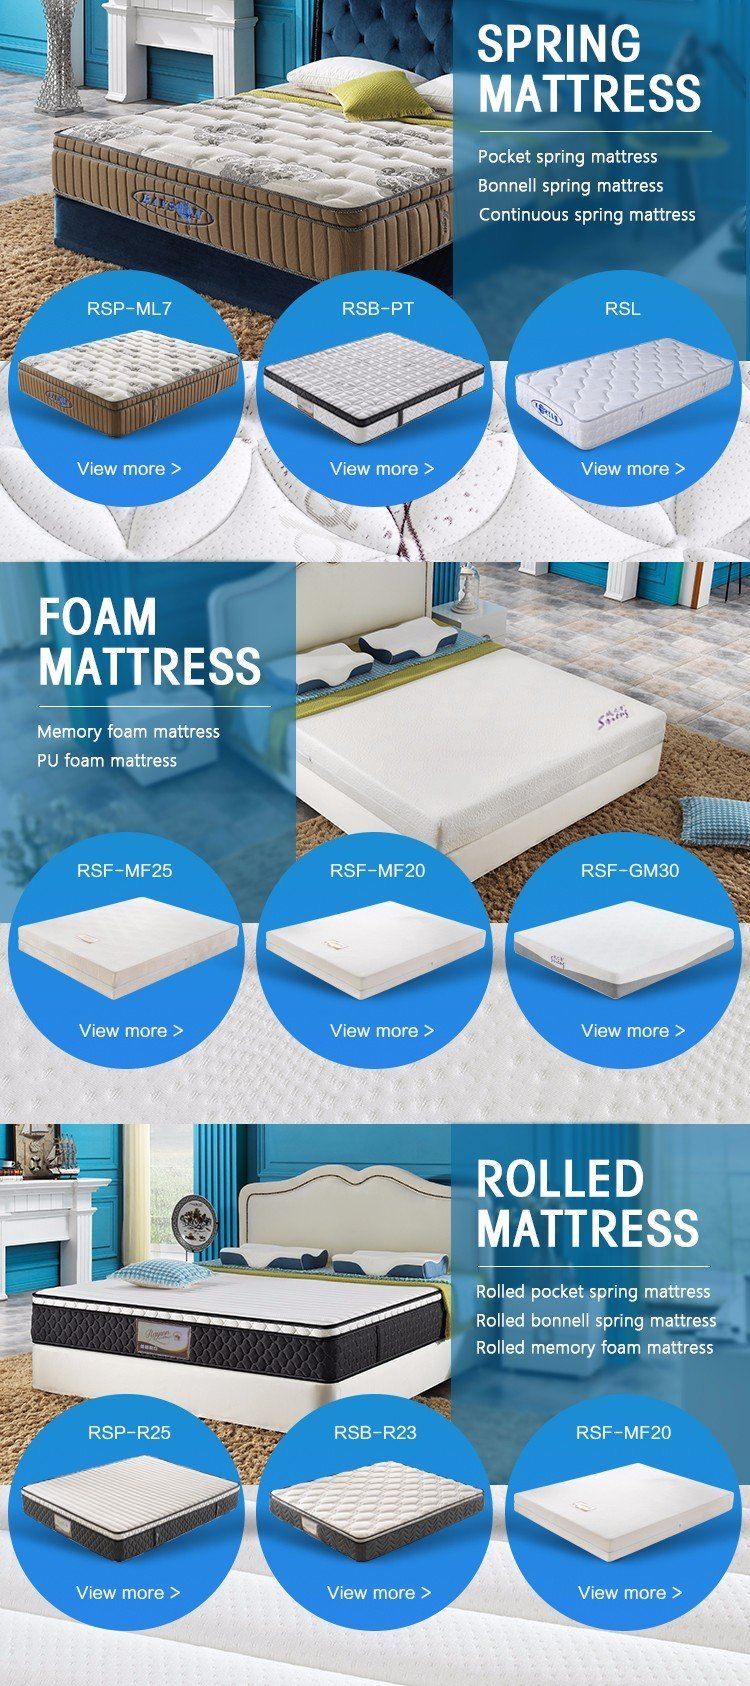 cushions special top selling Rayson Mattress Brand poly foam mattress toppers manufacture